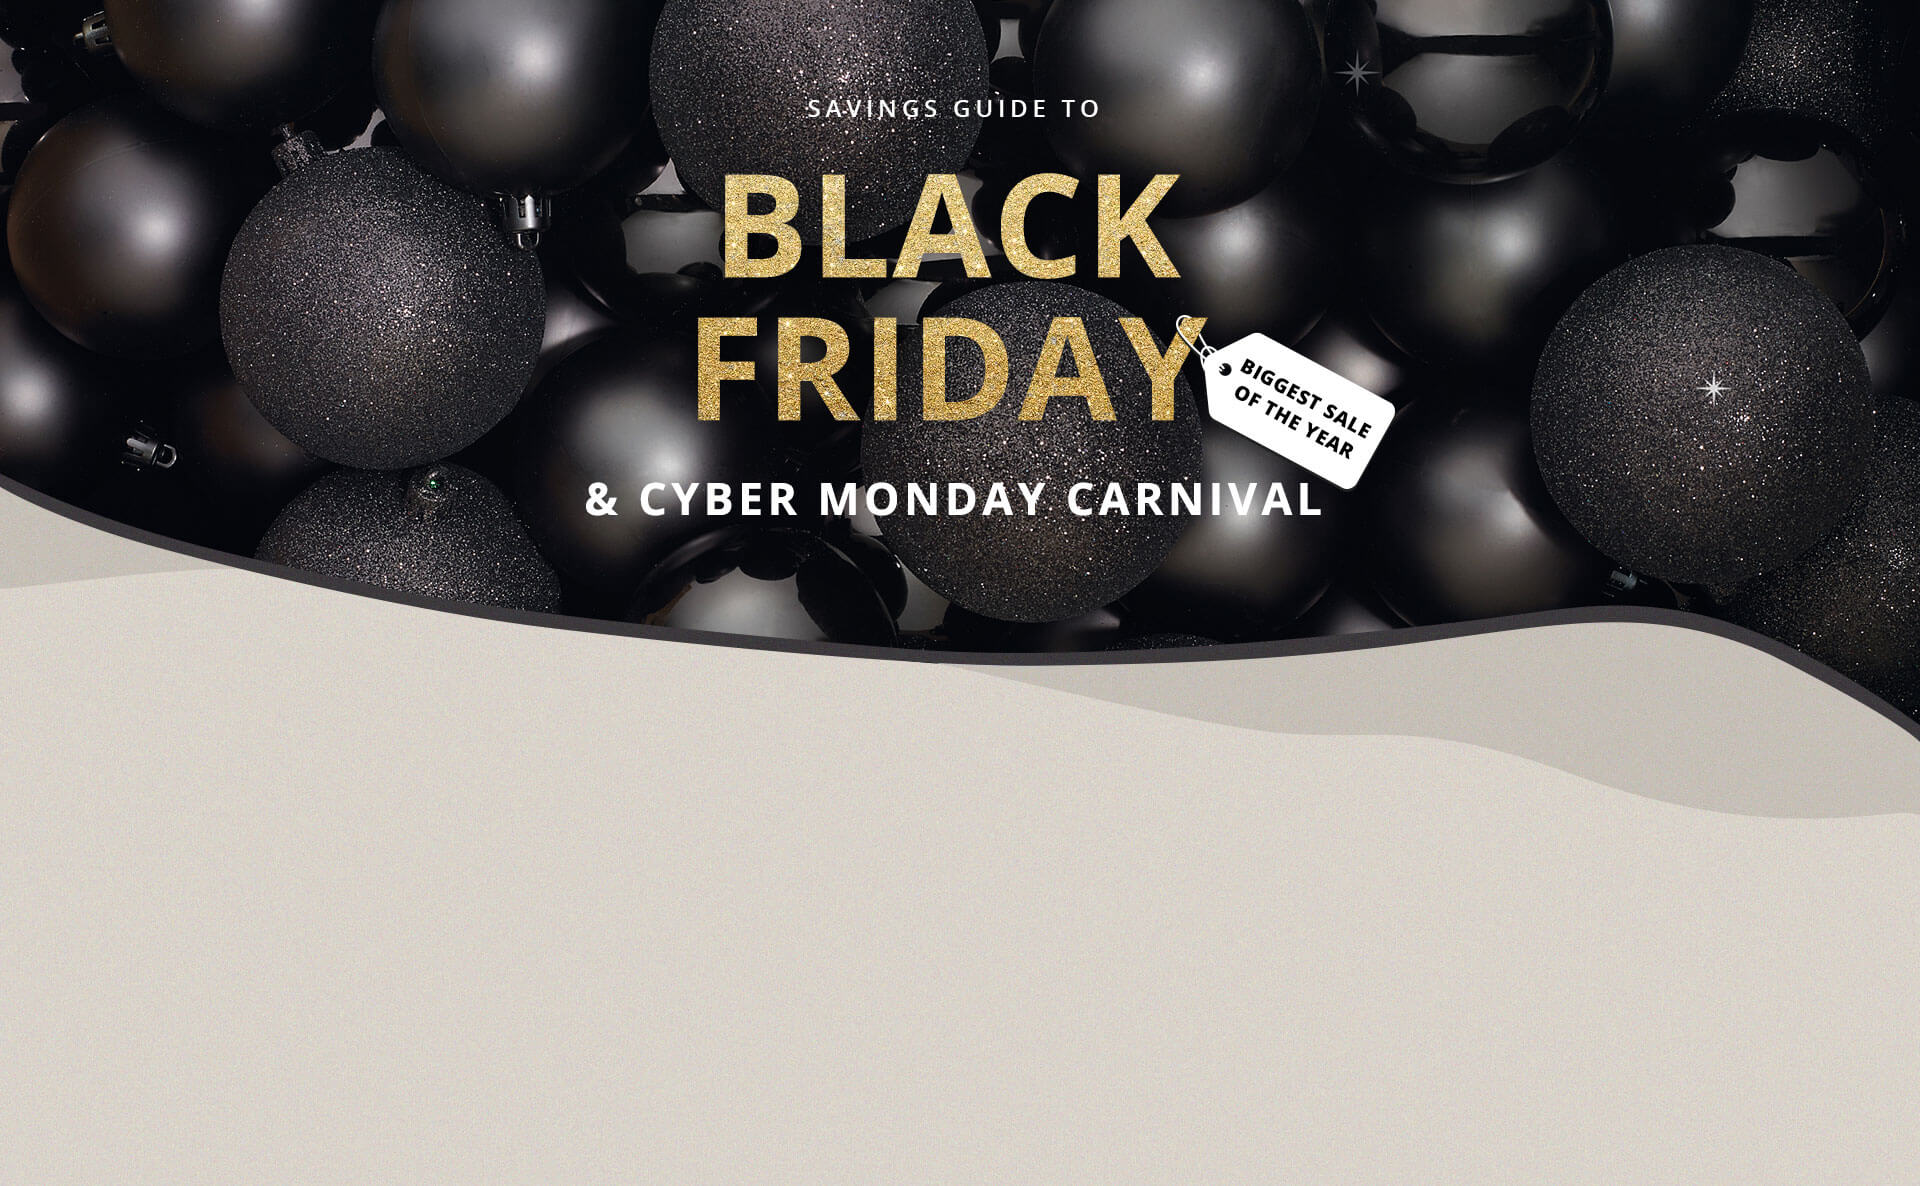 Black Friday is the Friday after Thanksgiving and has been considered the unofficial start of the holiday shopping season since the early s, but it wasn't until the s that the term